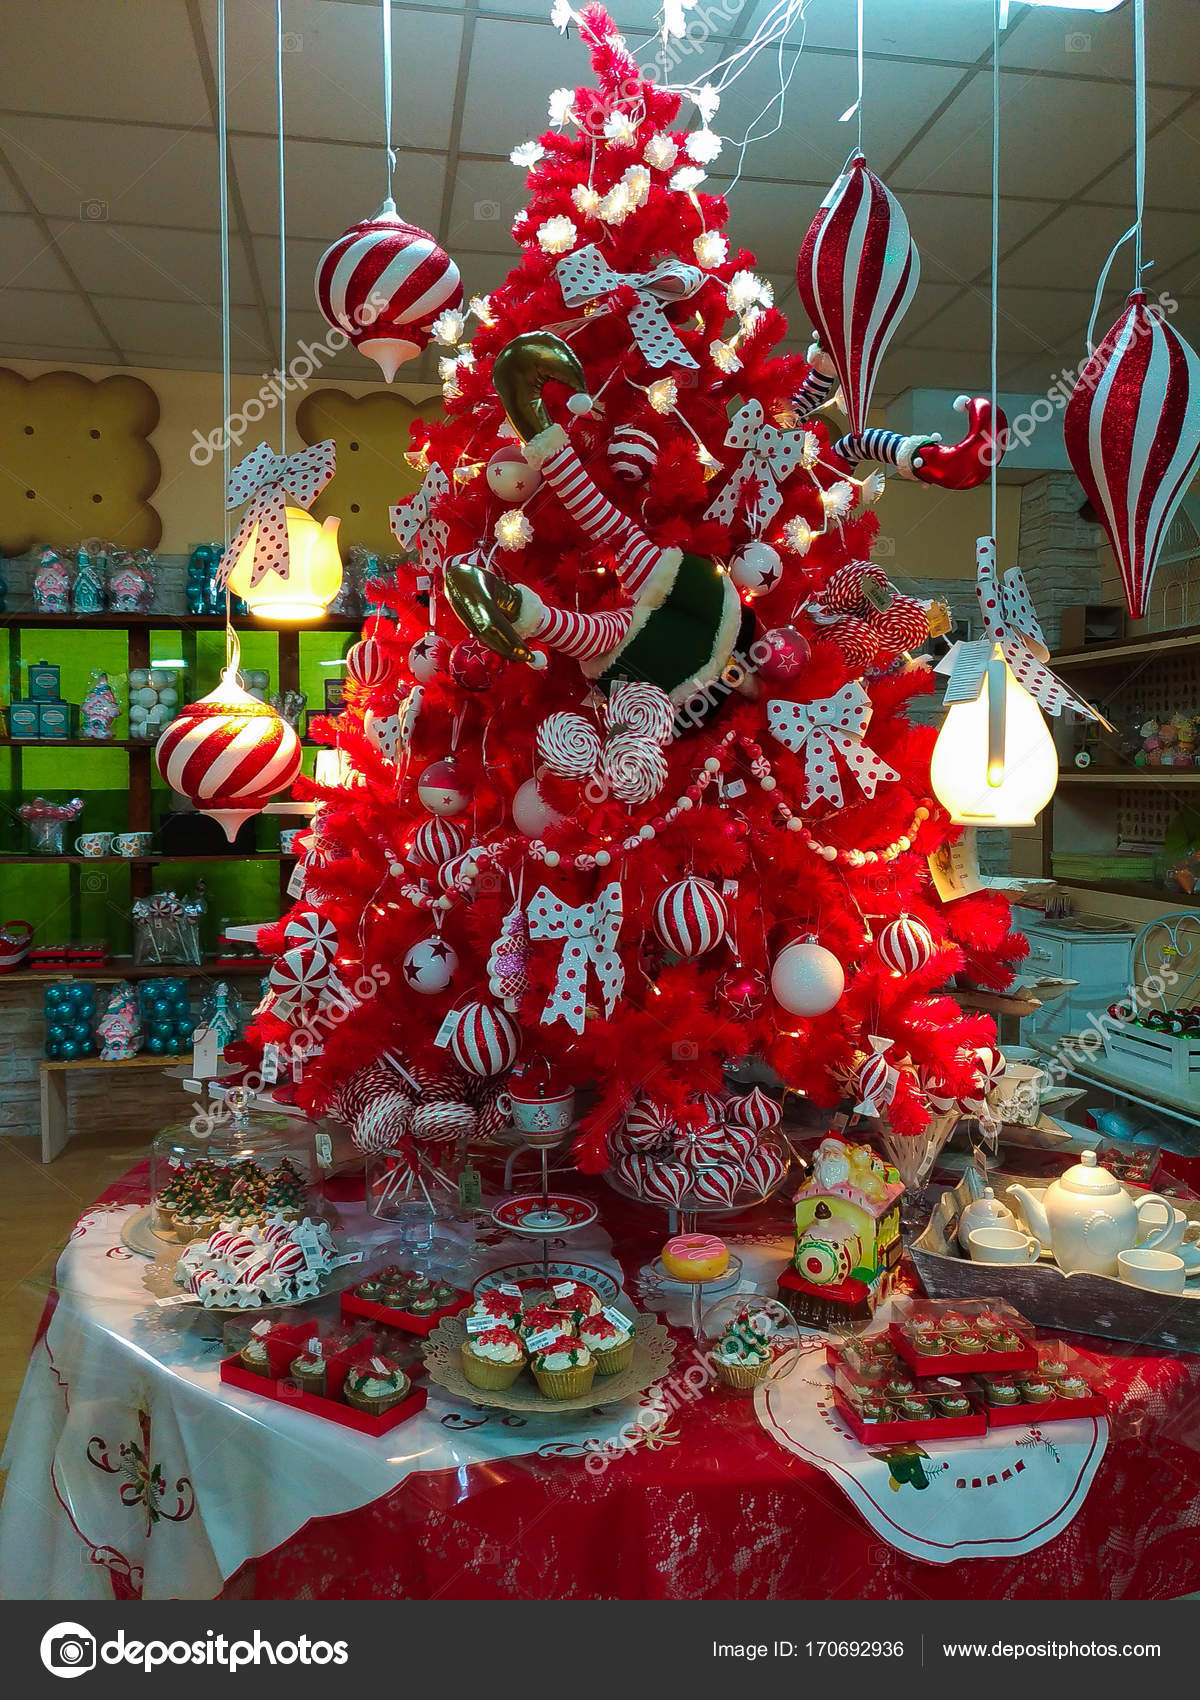 terni italy october 22 2017 red christmas tree with decorations at santa claus village shop in terni photo by buffy1982